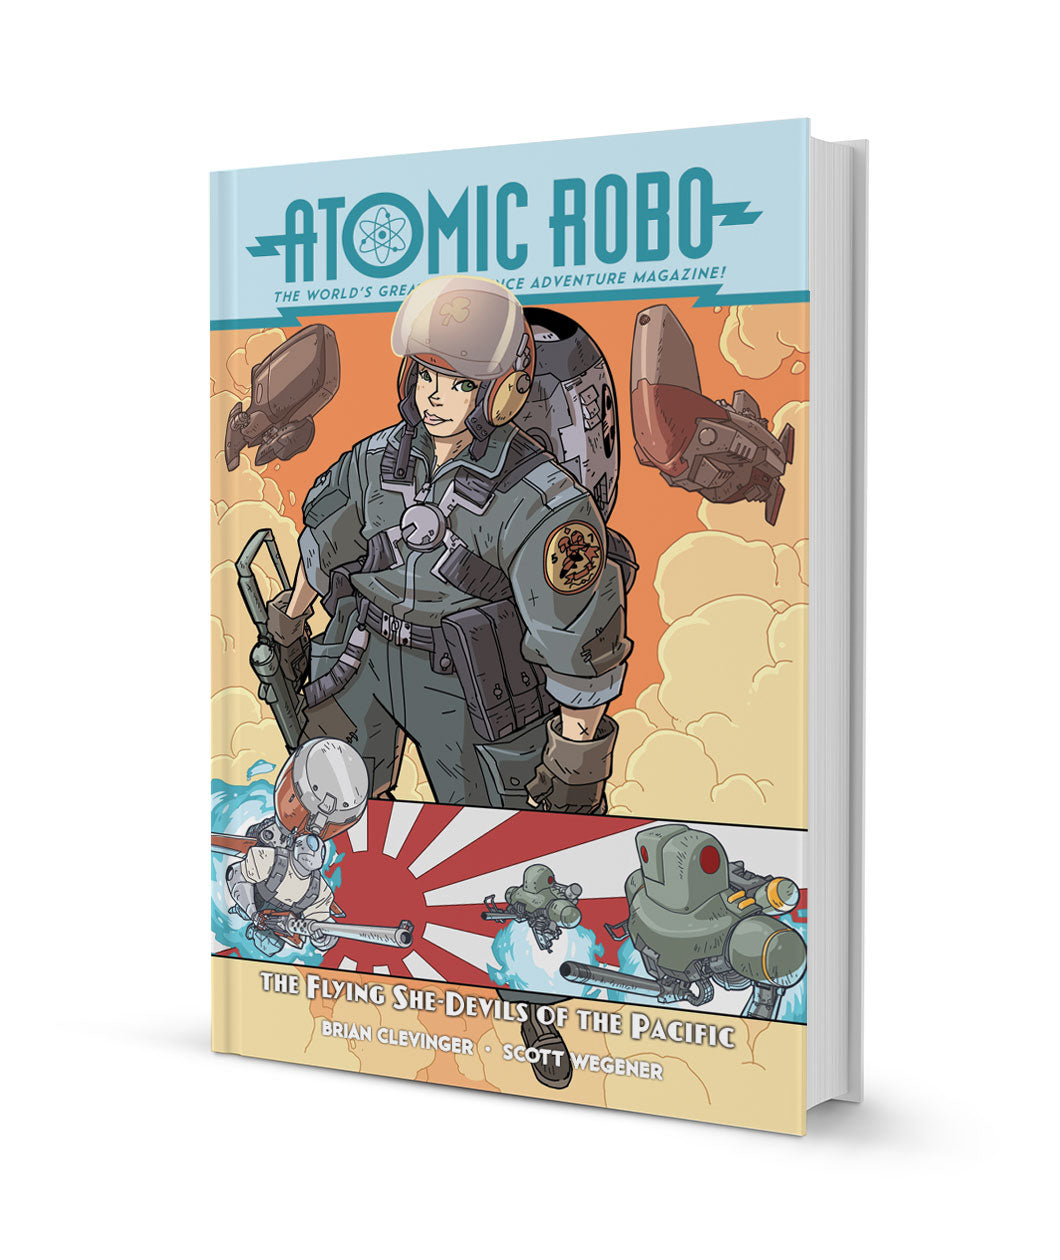 Atomic Robo and the Flying She-Devils of the Pacific